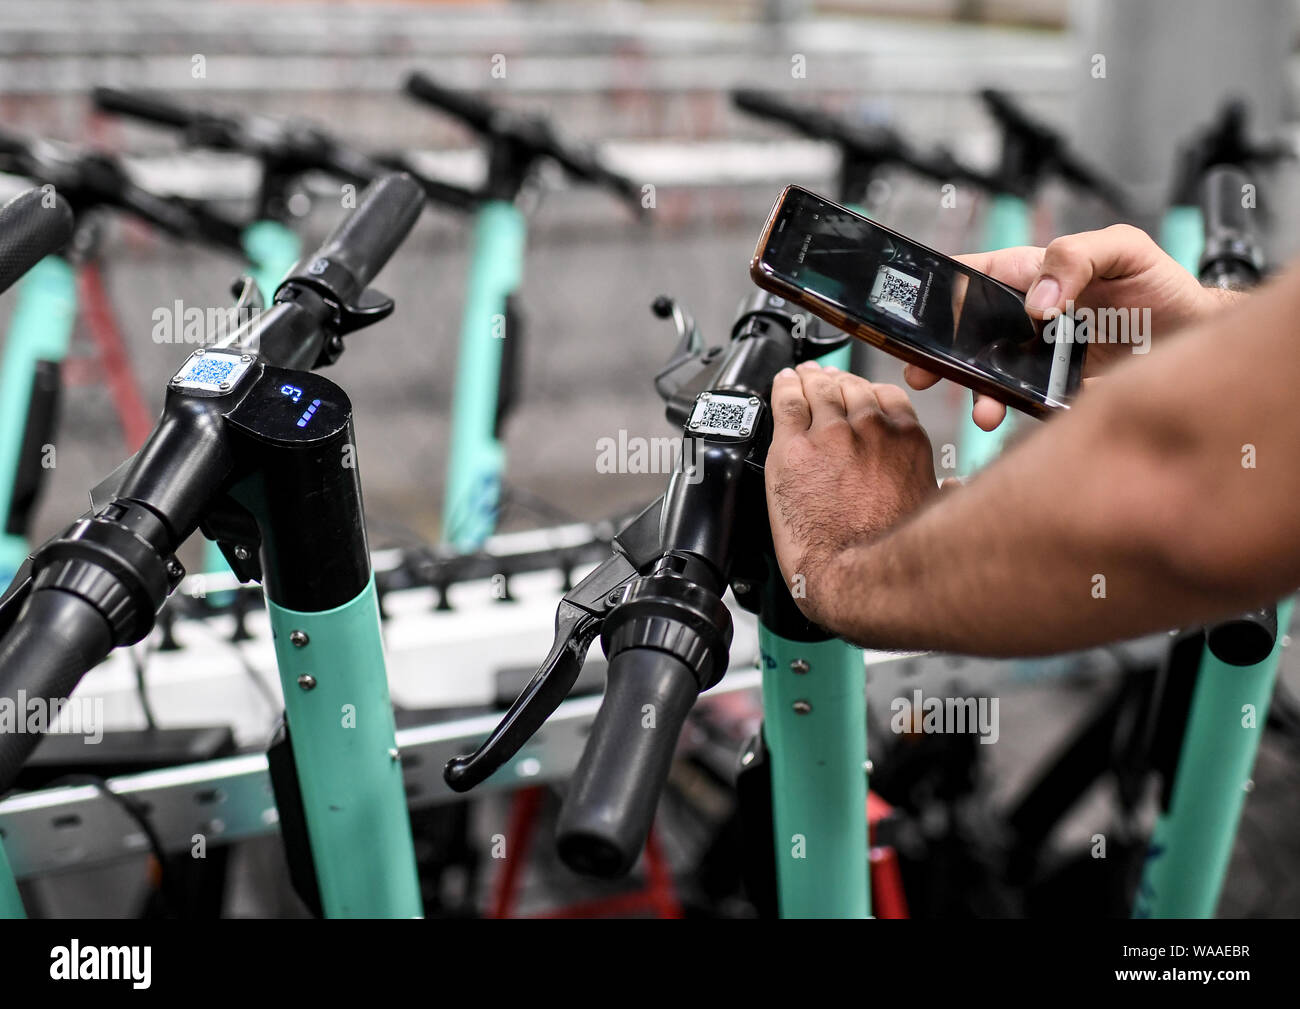 06 August 2019, Berlin: An employee scans the code of an e-tretroller of the provider Tier with his telephone. Photo: Britta Pedersen/dpa-Zentralbild/dpa Stock Photo